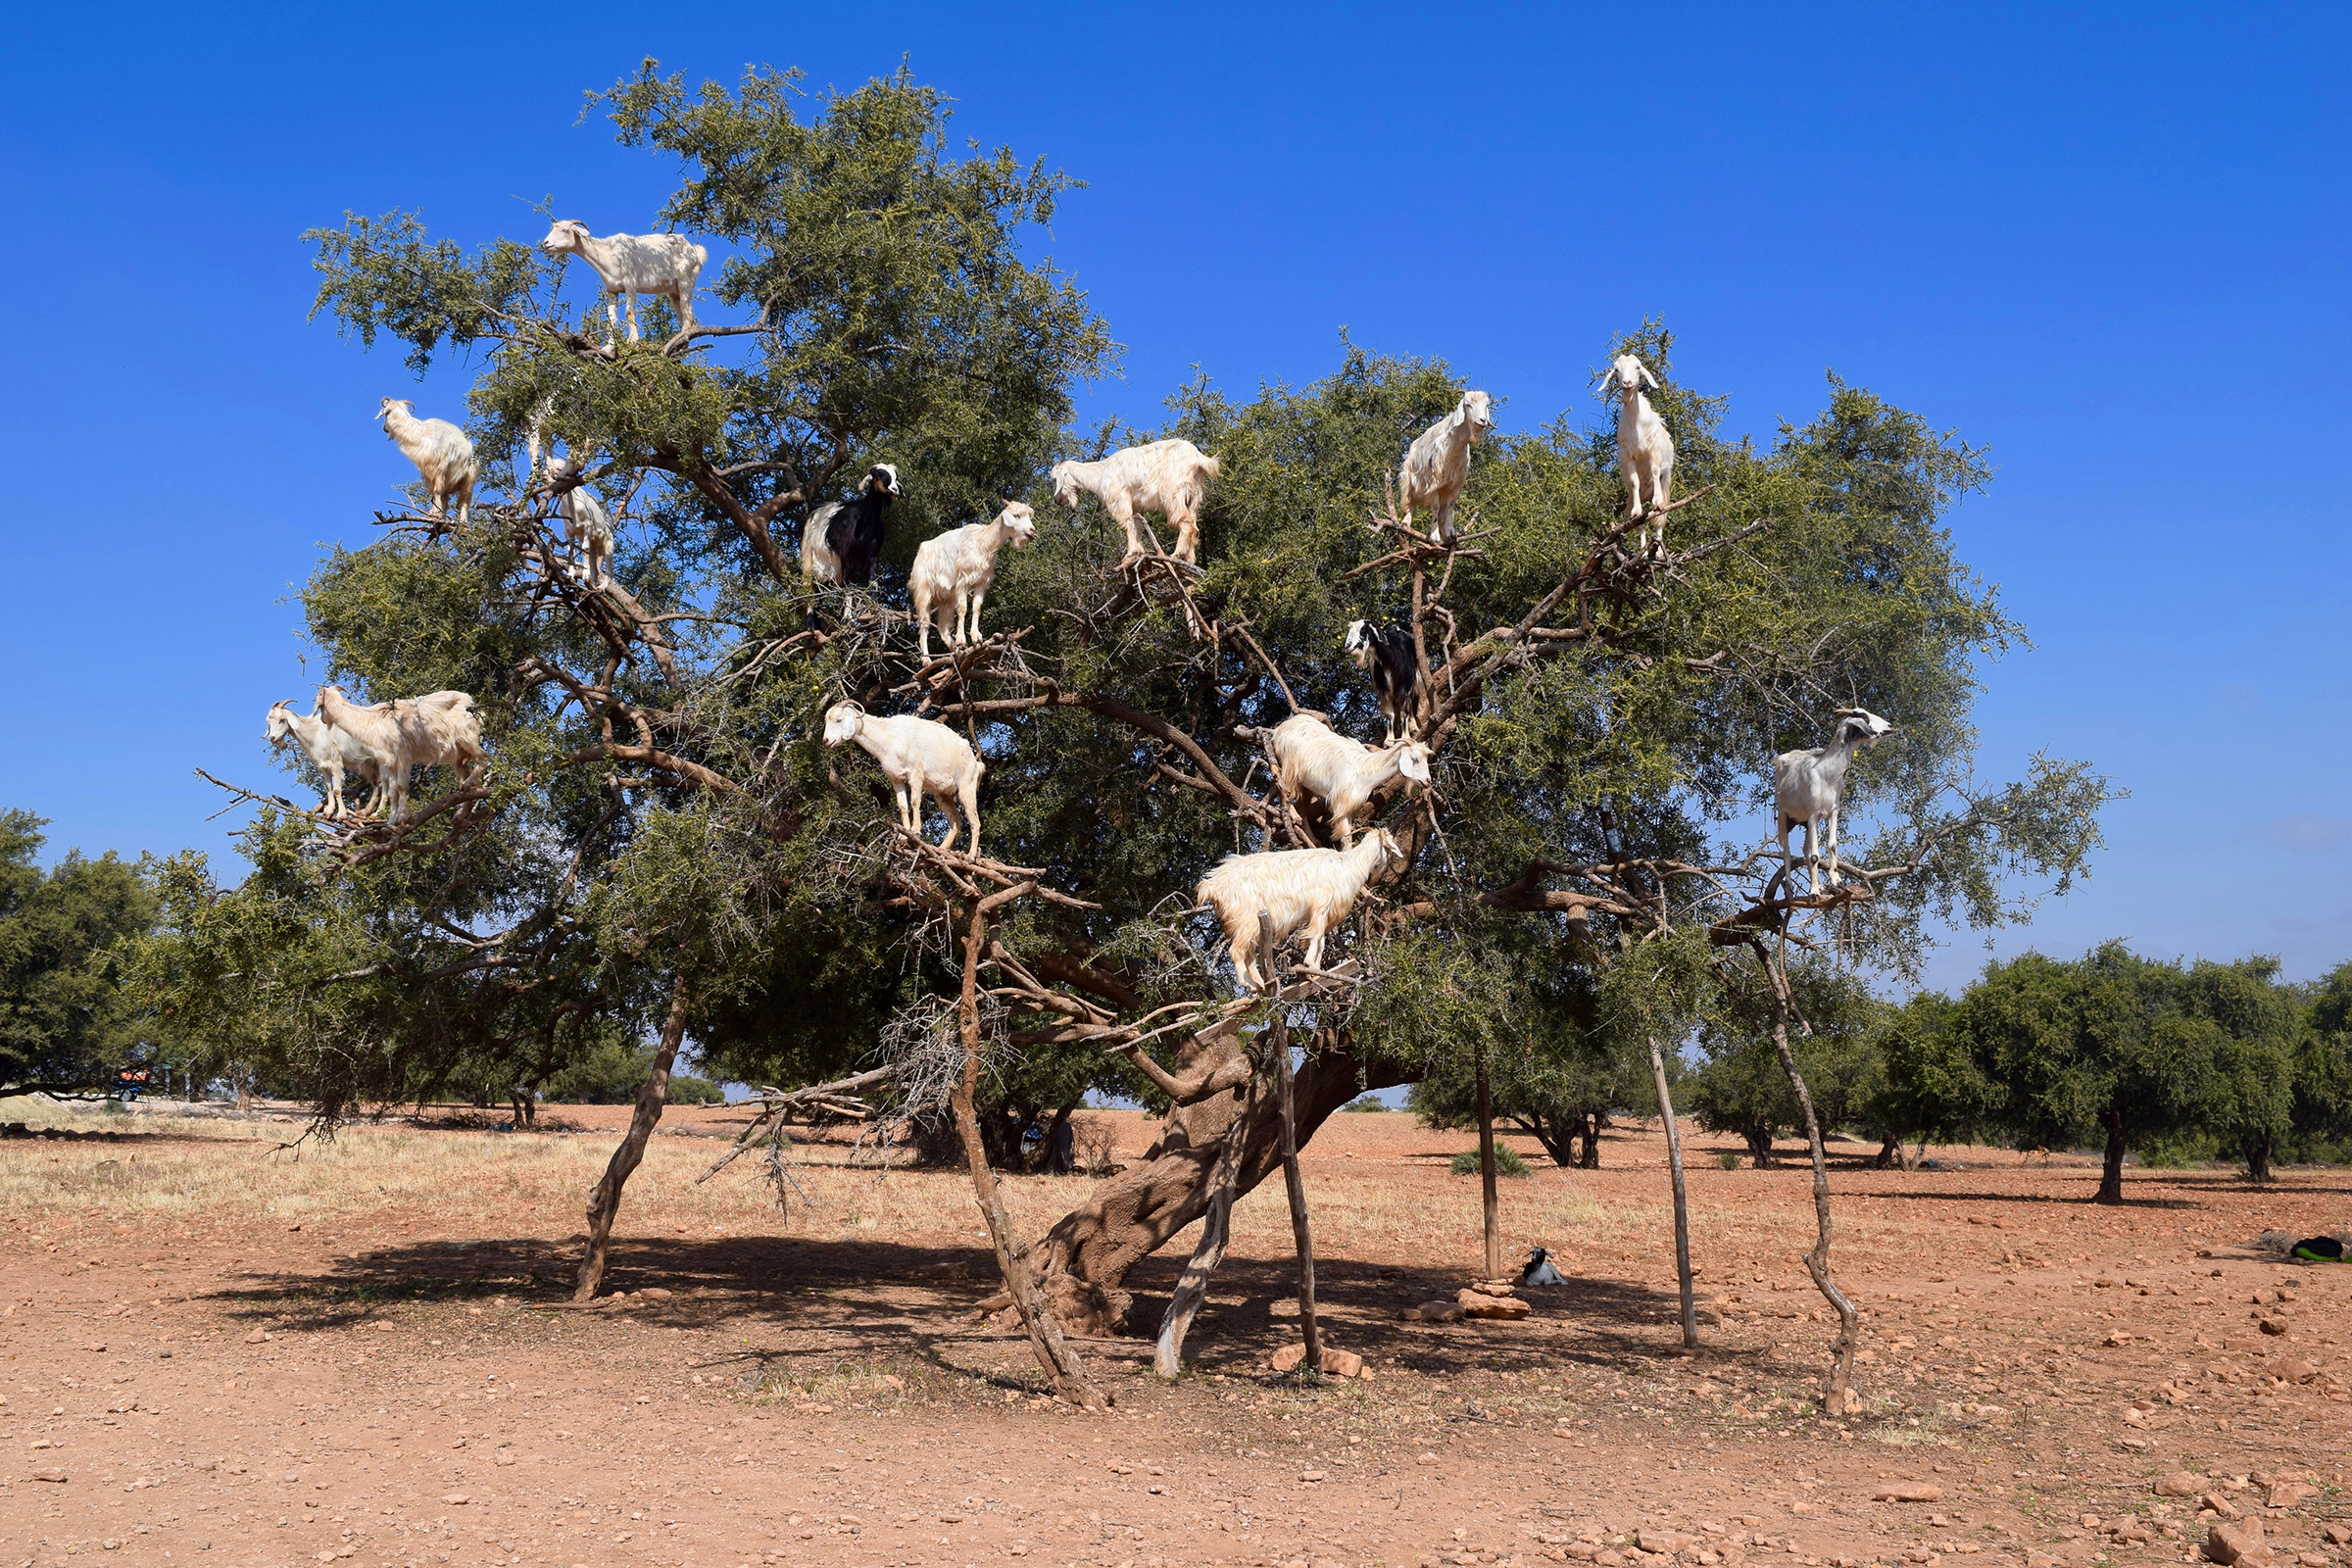 Morocco Goats In An Argan Tree